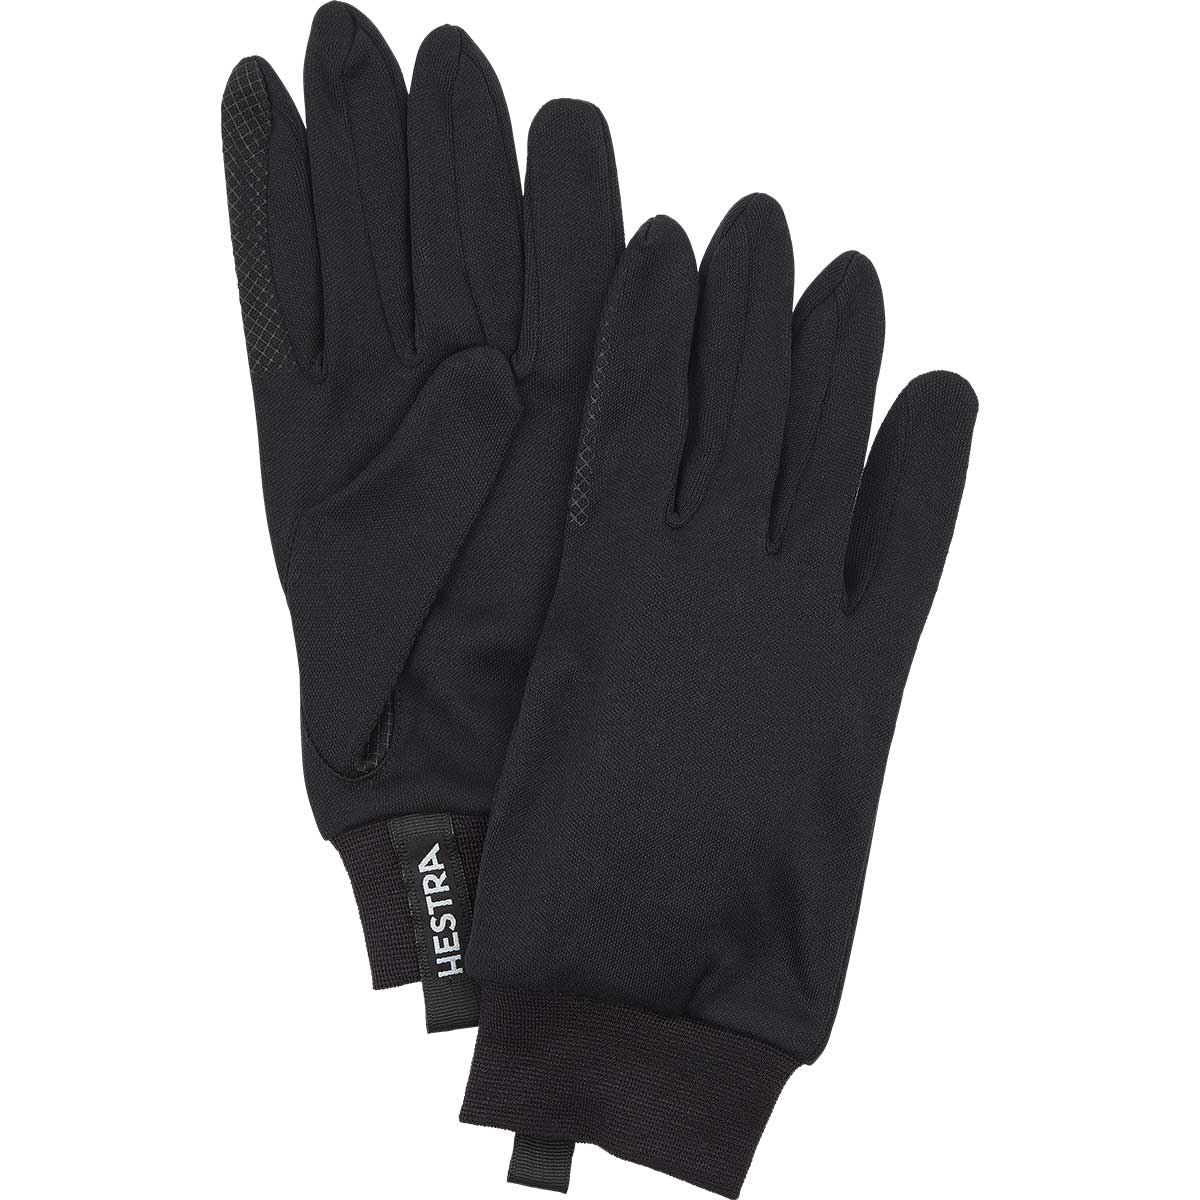 Hestra Silk Liner Touch Point Liner Glove in black